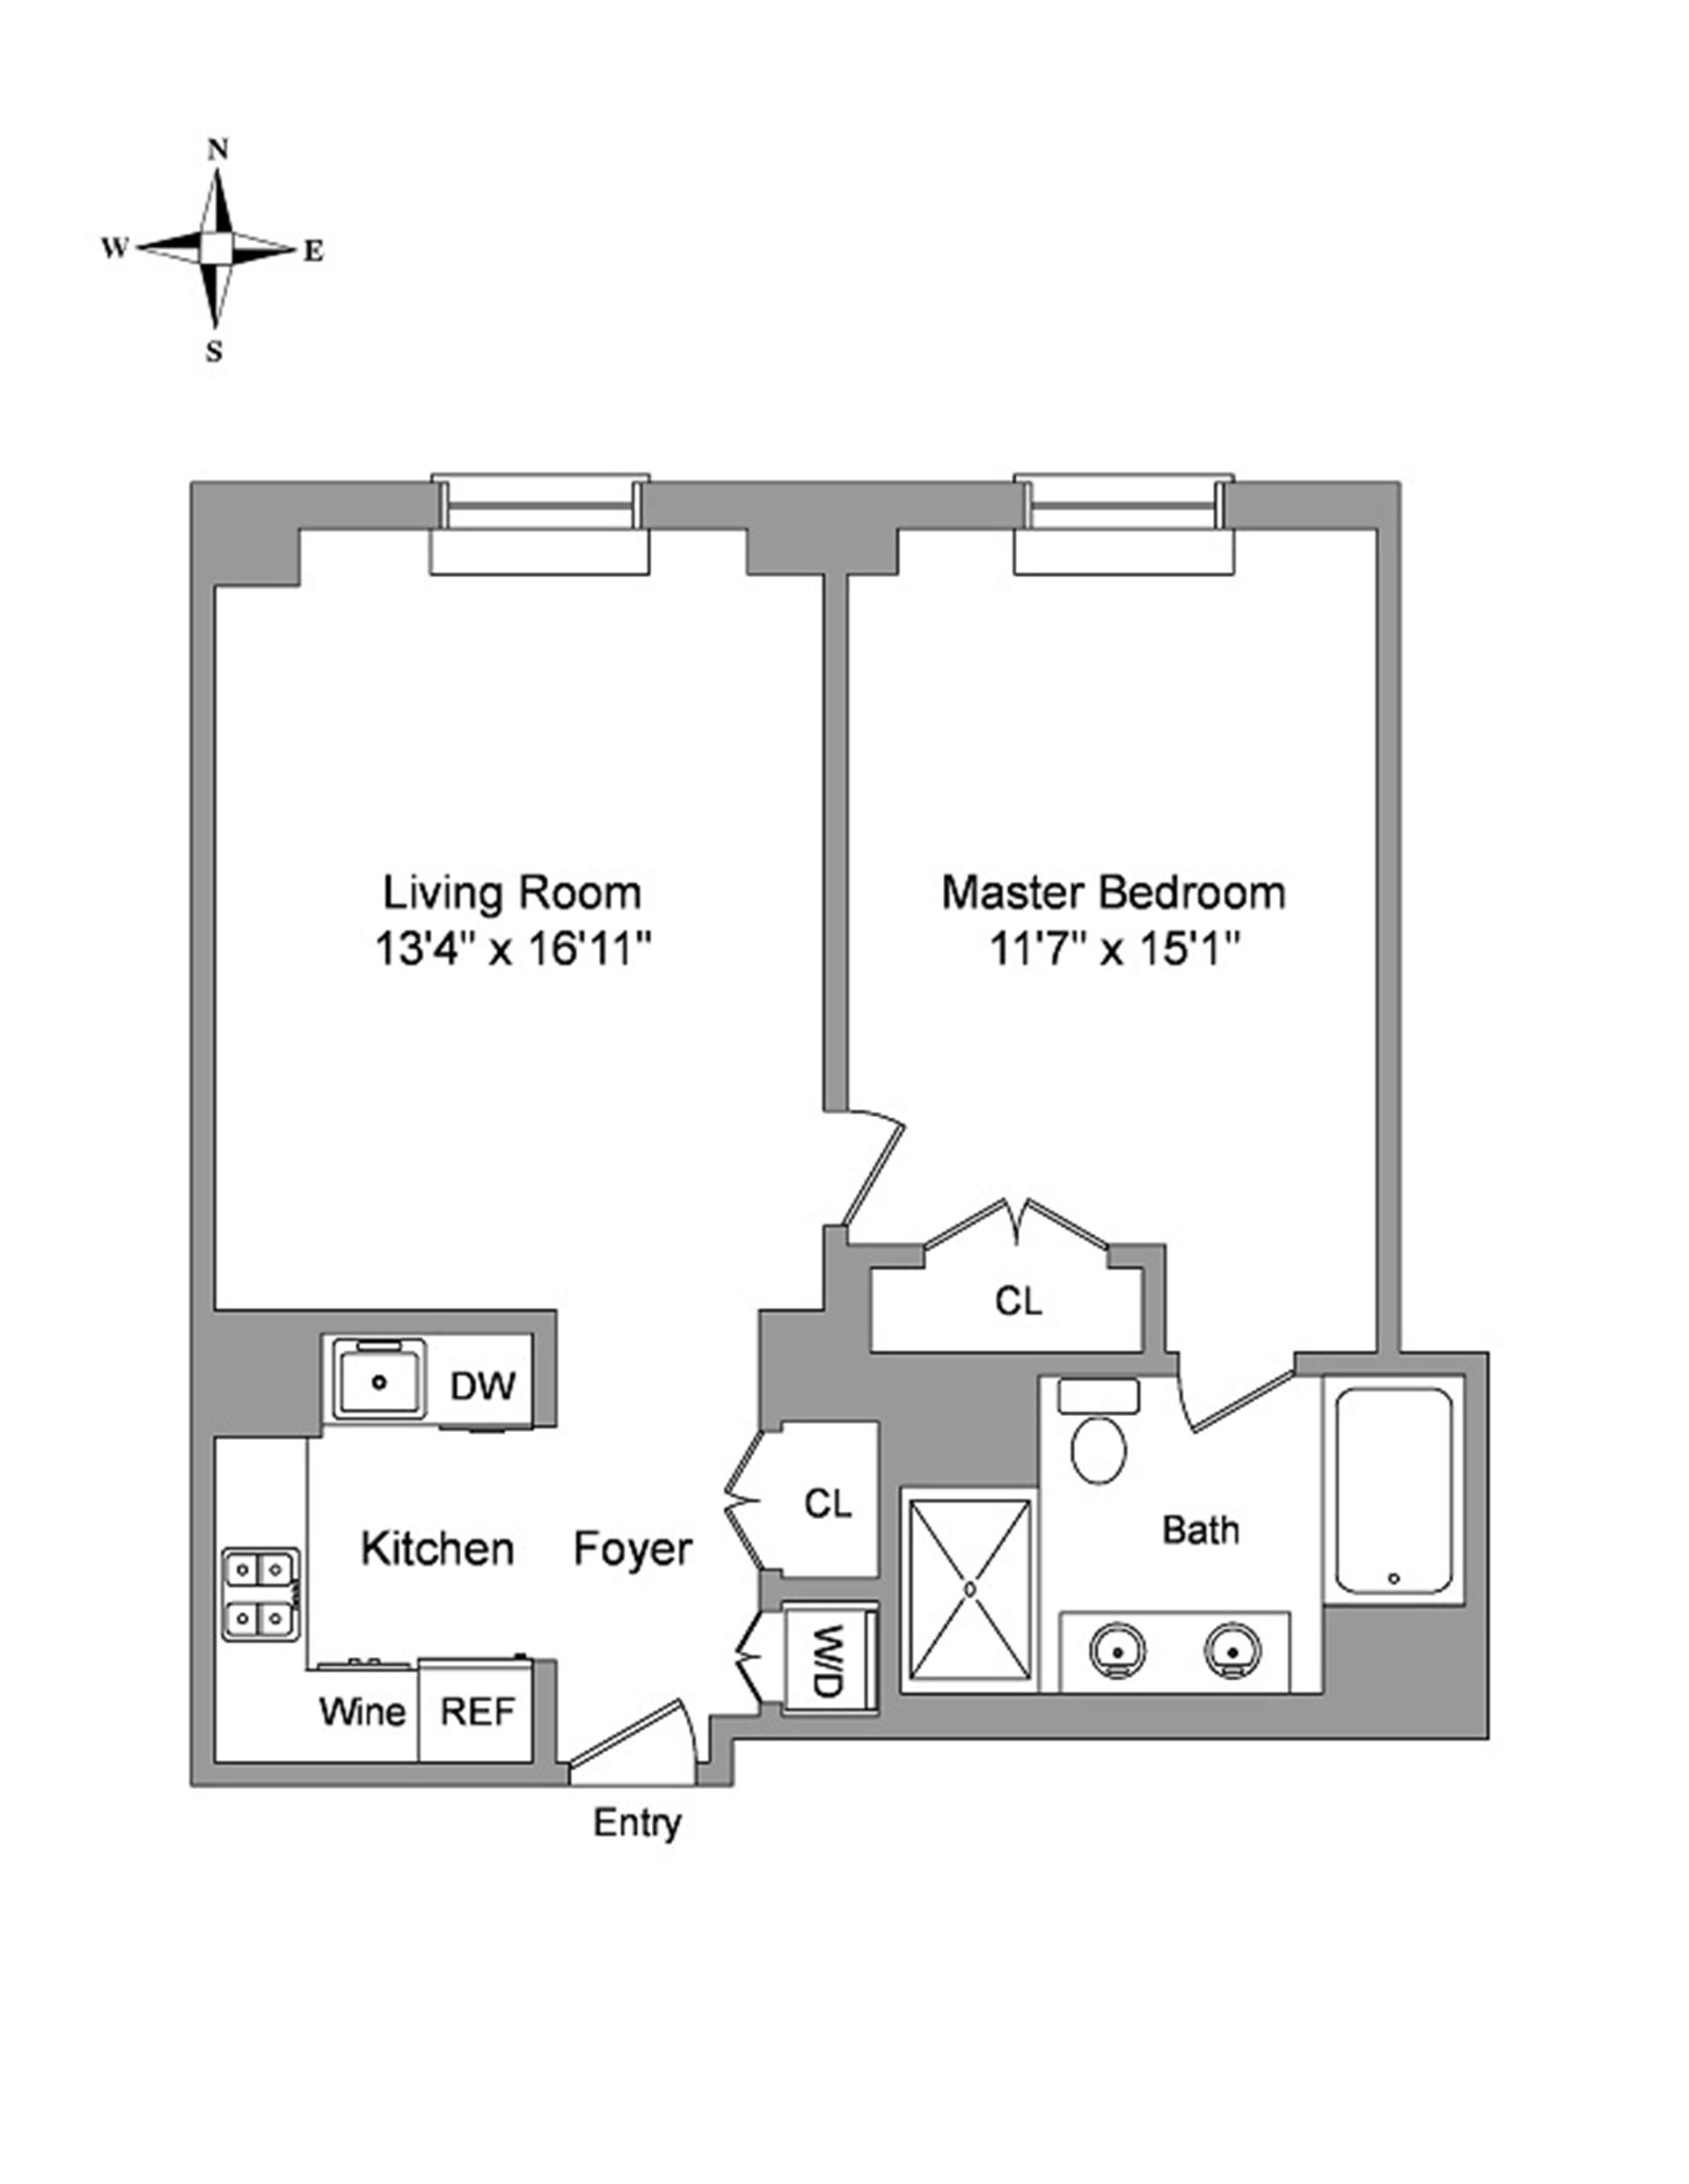 Floor plan of 100 West 58th St, 3E - Midtown, New York